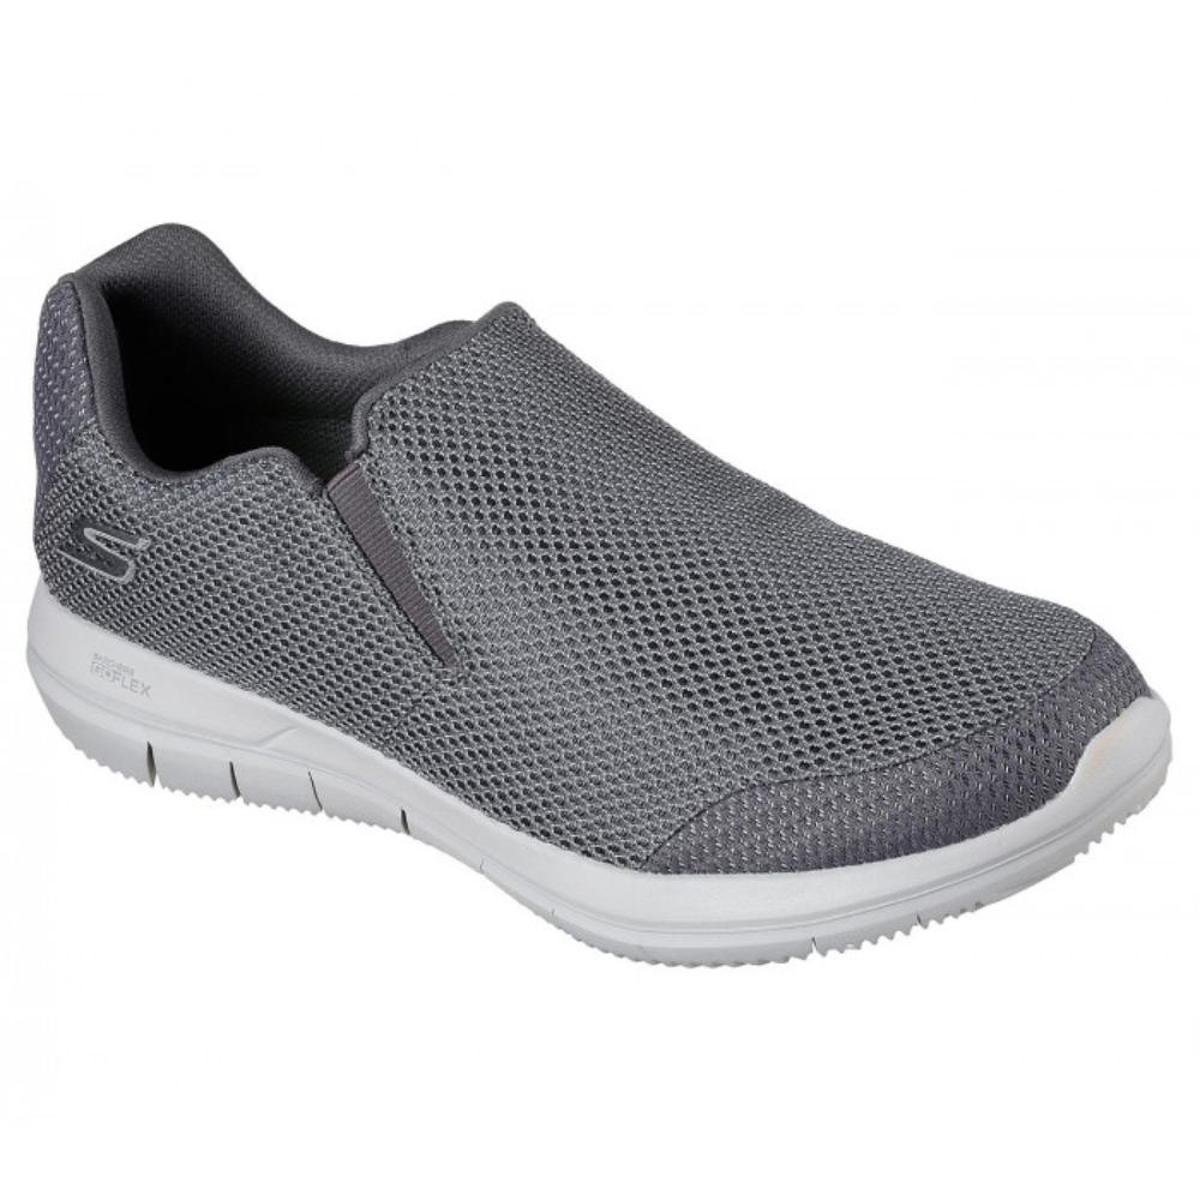 best online hot new products genuine shoes Tênis Skechers Go Flex 2 Completion Masculino - Cinza